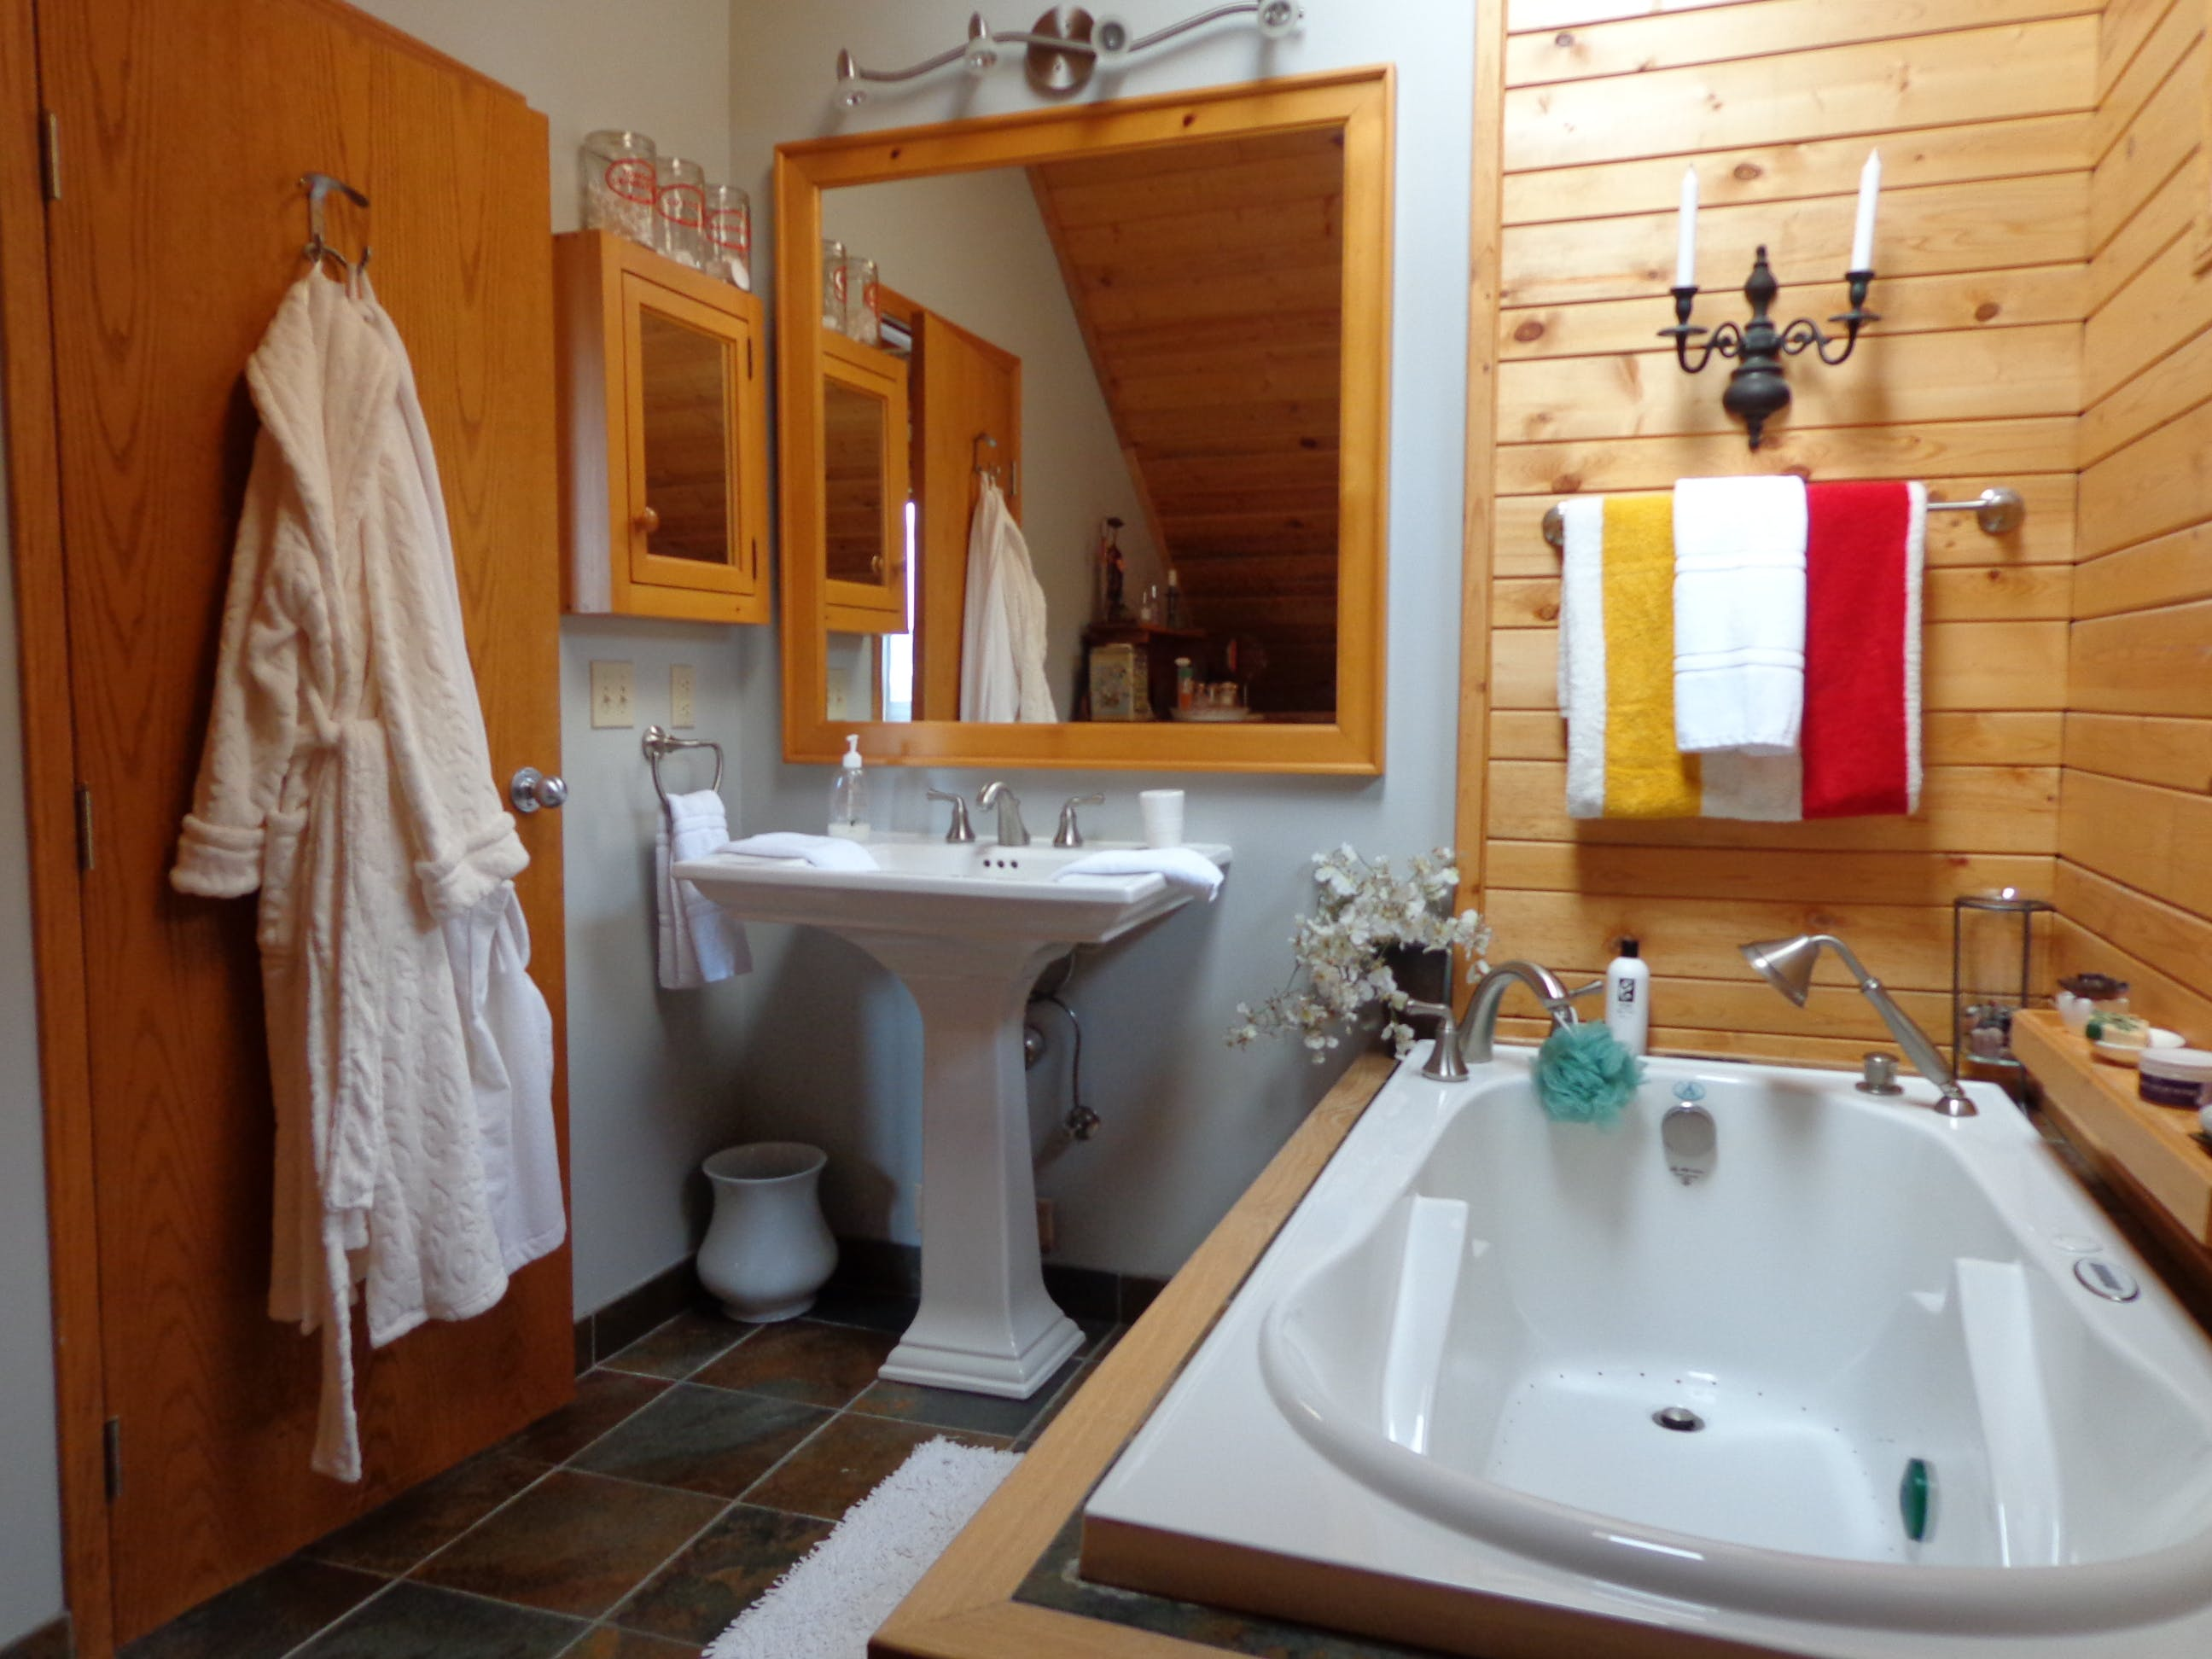 Mountain View ensuite bathroom has massage tub and hand shower